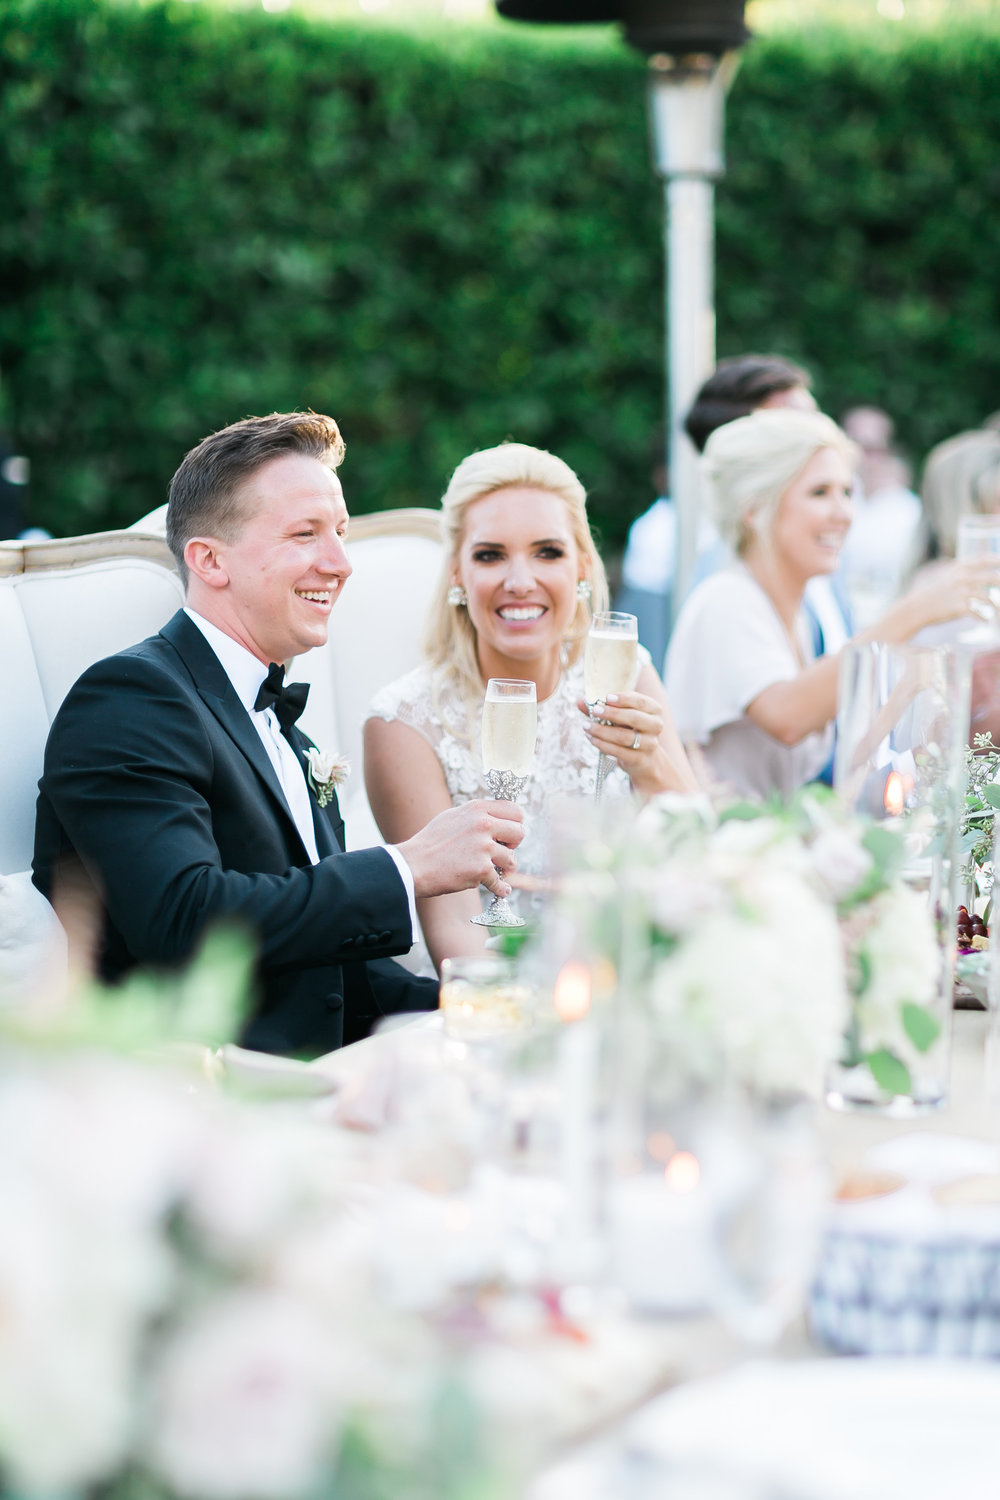 A toast to the newlyweds.  Destination Wedding Planner  ANDREA EPPOLITO EVENTS  · Images by  J.ANNE P  HOTOOGRAPHY  · Video  HOO FILMS  · Venue Ritz Carlton Bacara Santa Barbara